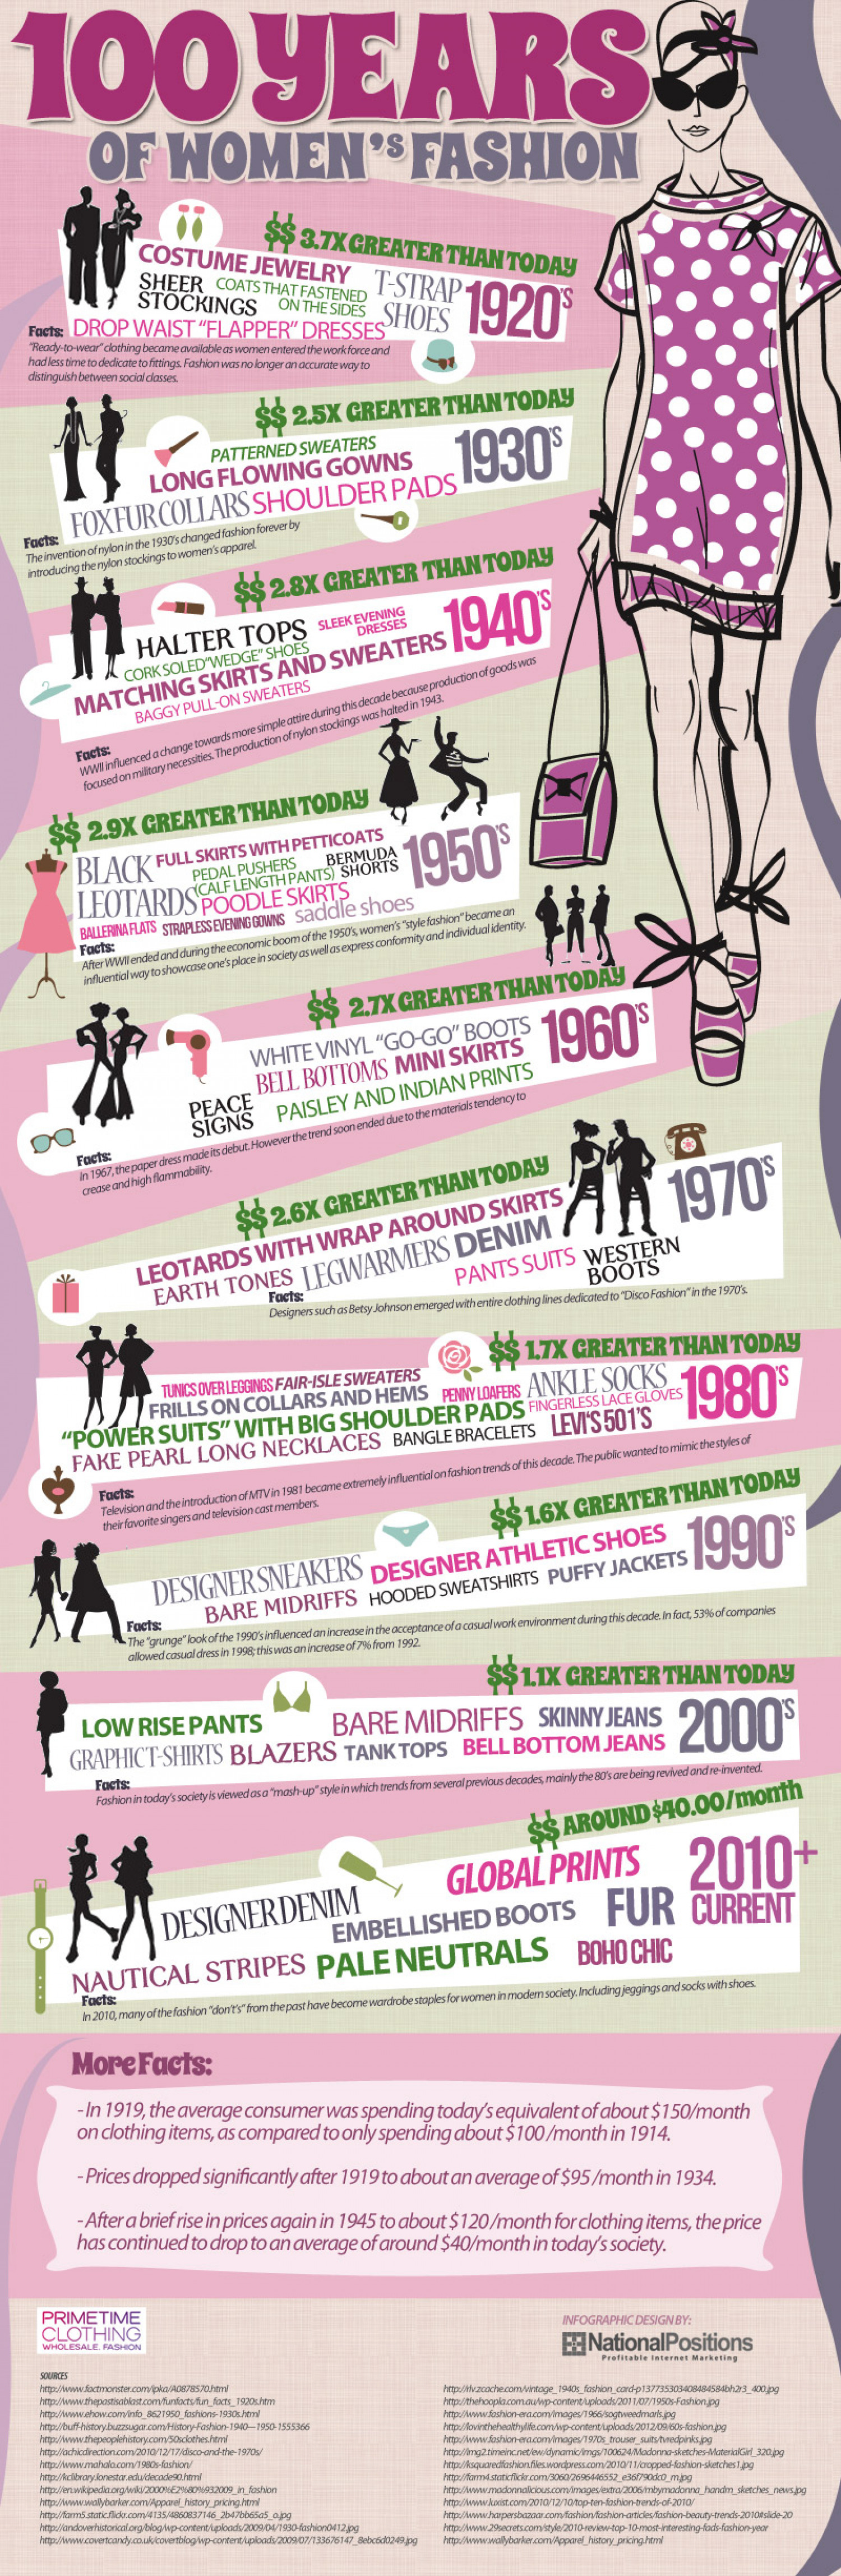 100 Years of Women's Fashion Infographic